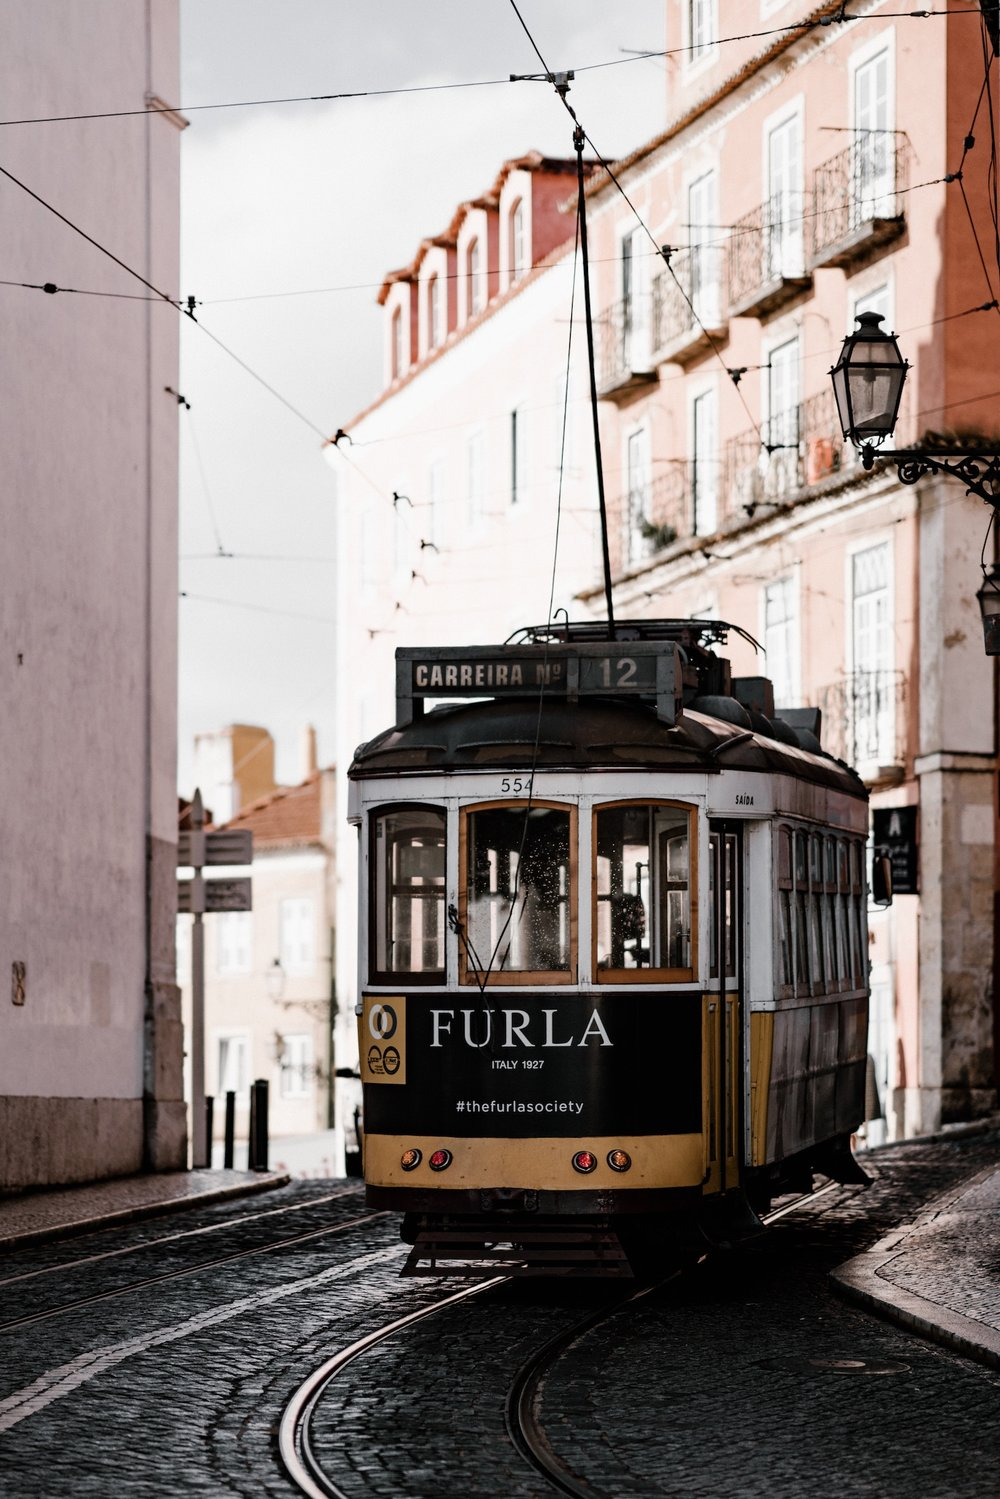 new direct flights to Lisbon Portugal in 2019